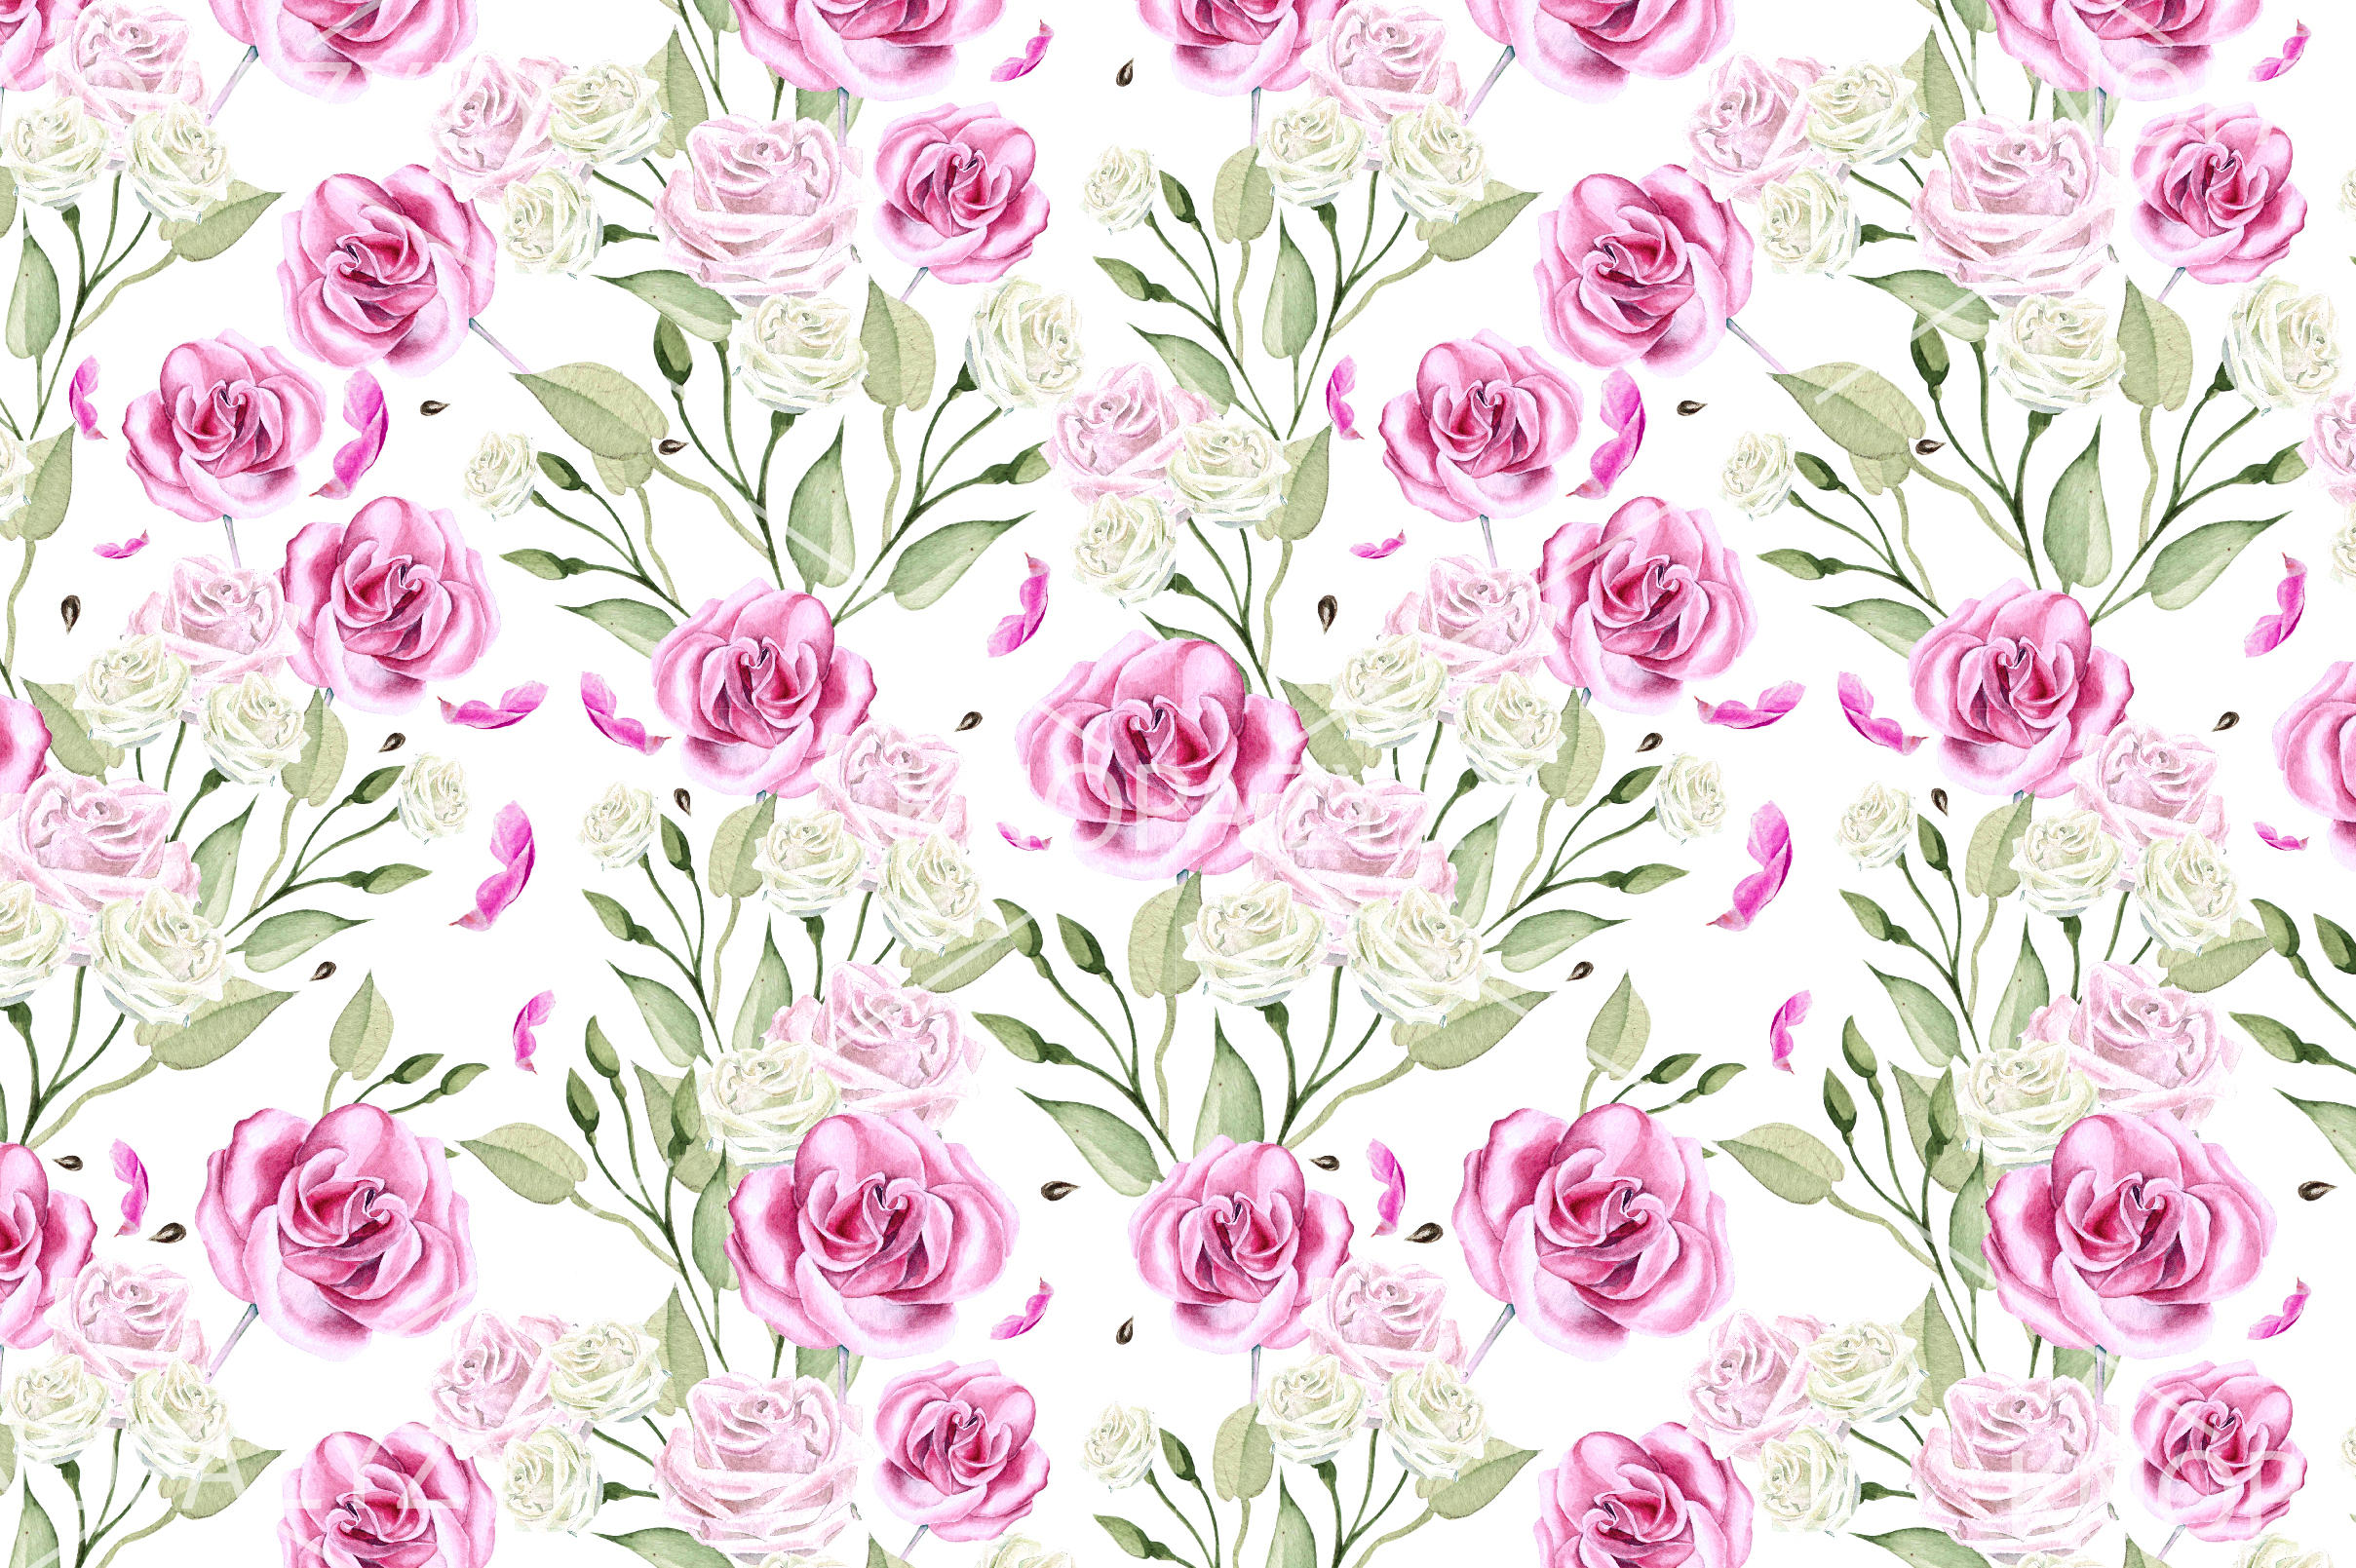 10 Hand Drawn Watercolor Pattern example image 9